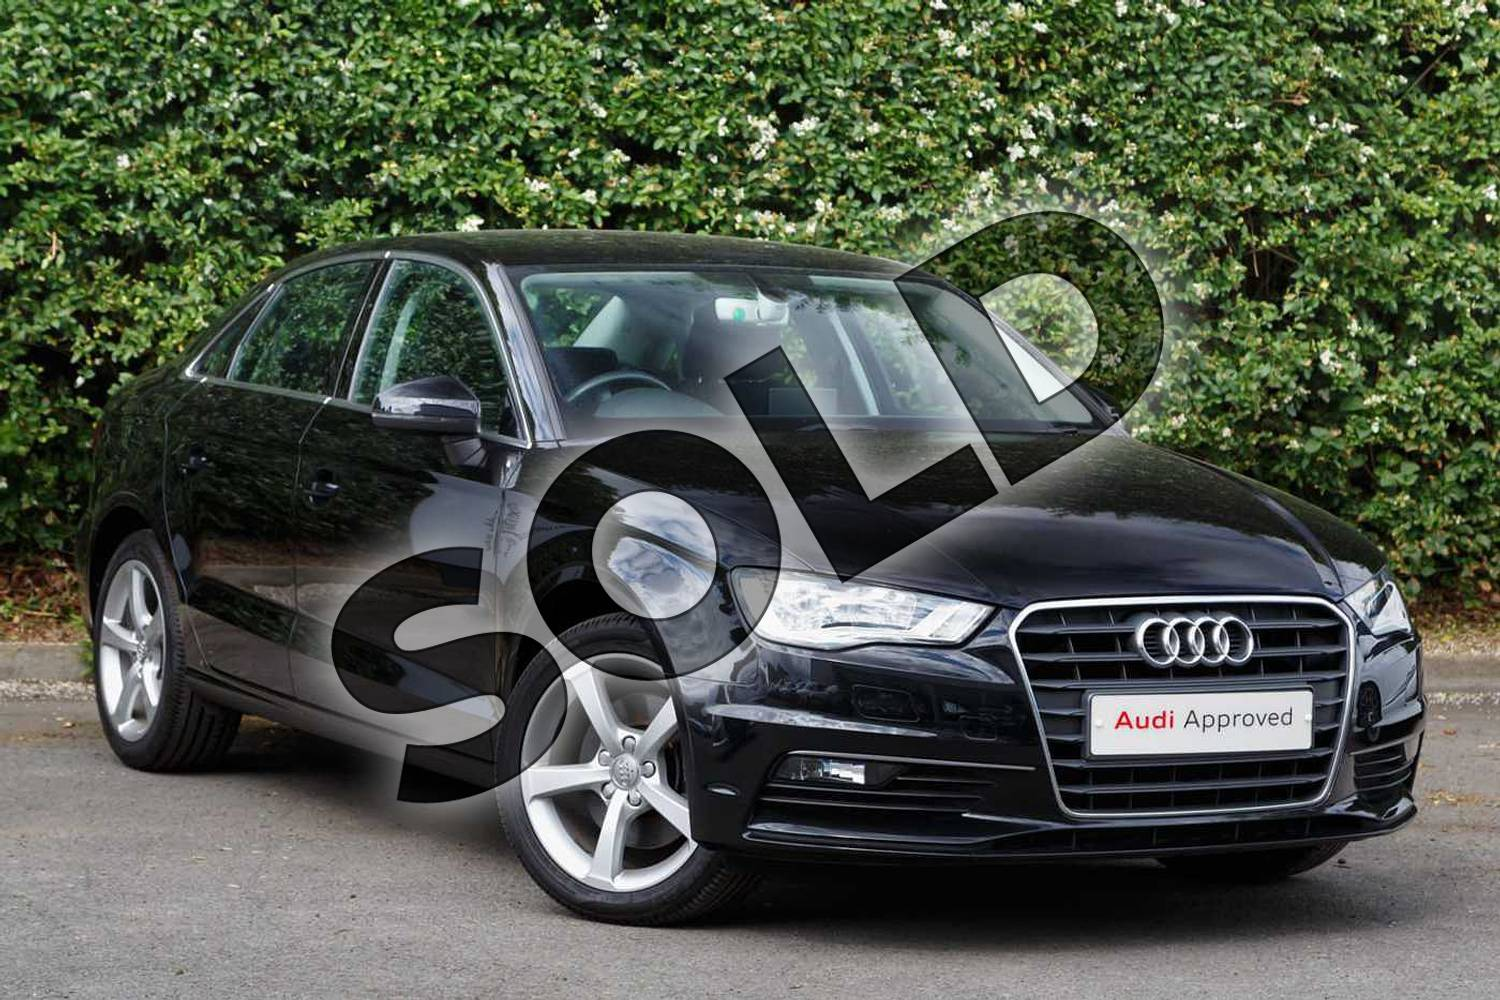 2016 Audi A3 Diesel Saloon Diesel 2.0 TDI 184 Sport 4dr in Mythos Black, metallic at Worcester Audi